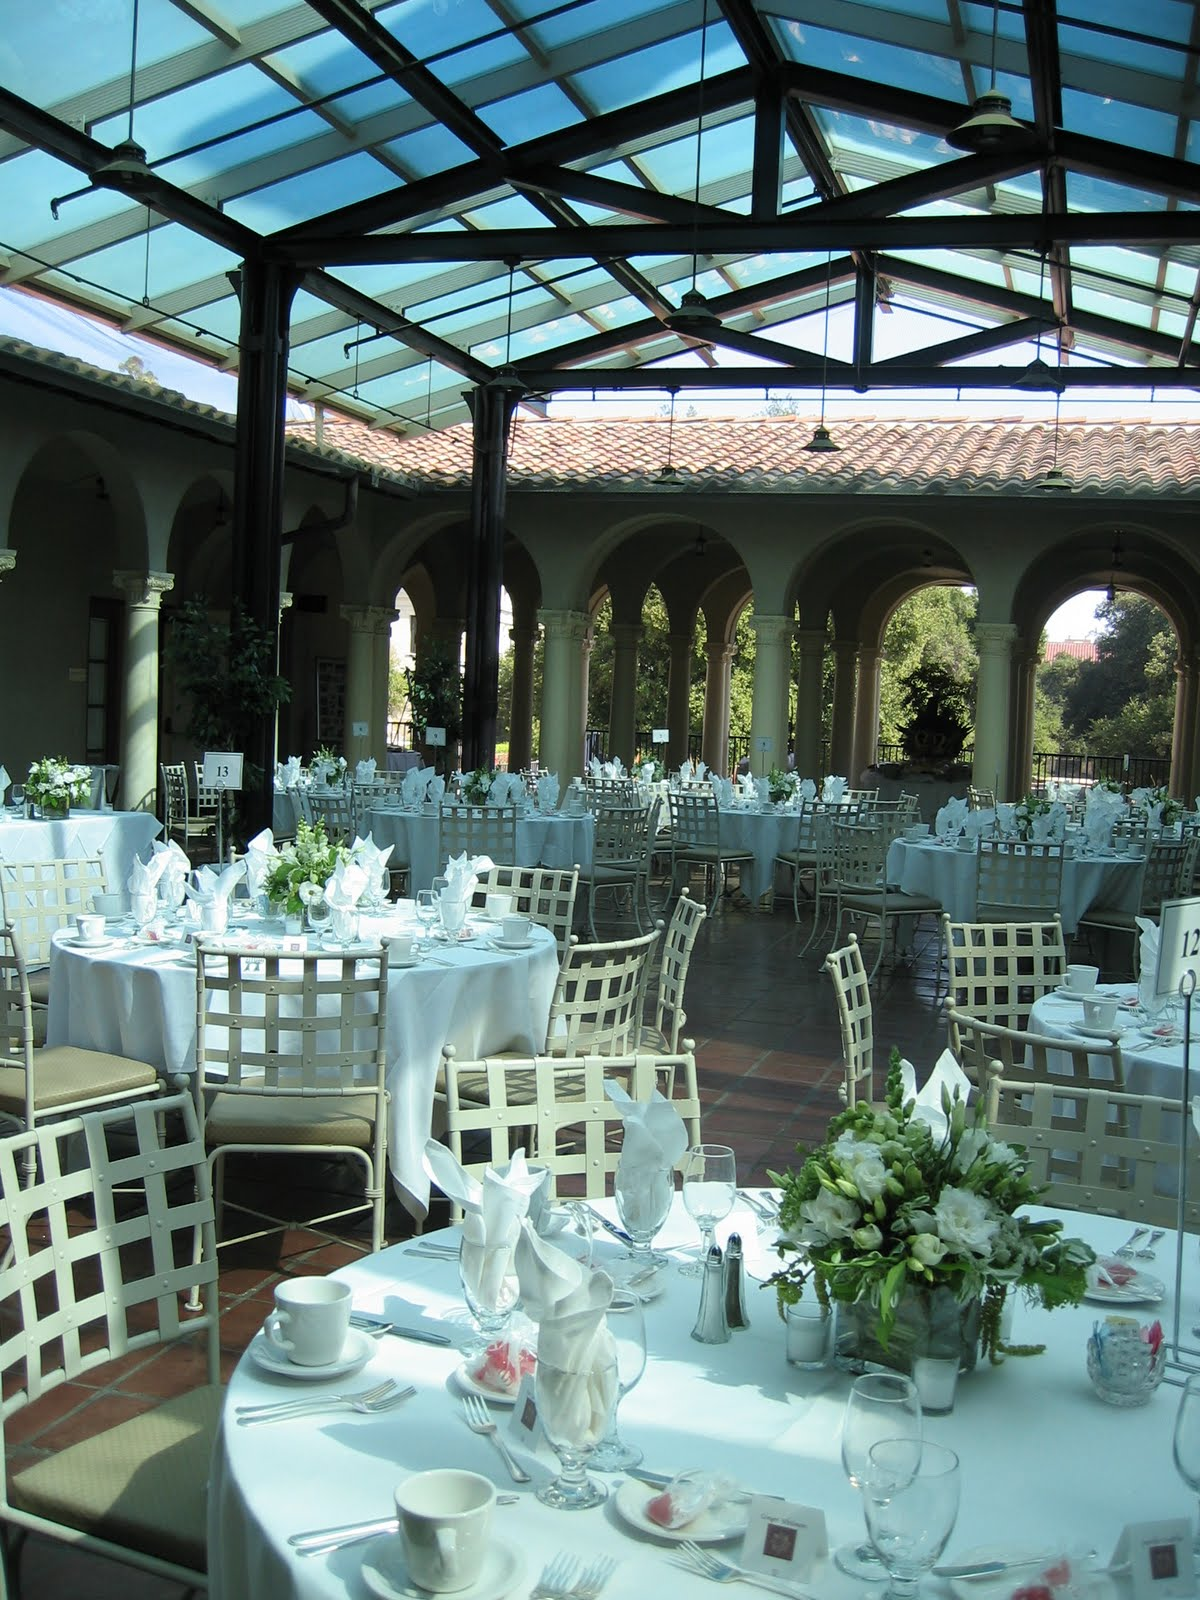 Tall Back Dining Chairs Chair Cover And Sash Hire Aberdeen My Journey To Plan A Incredible Socal Wedding On Budget: Venue #38: Occidental College (eagle ...